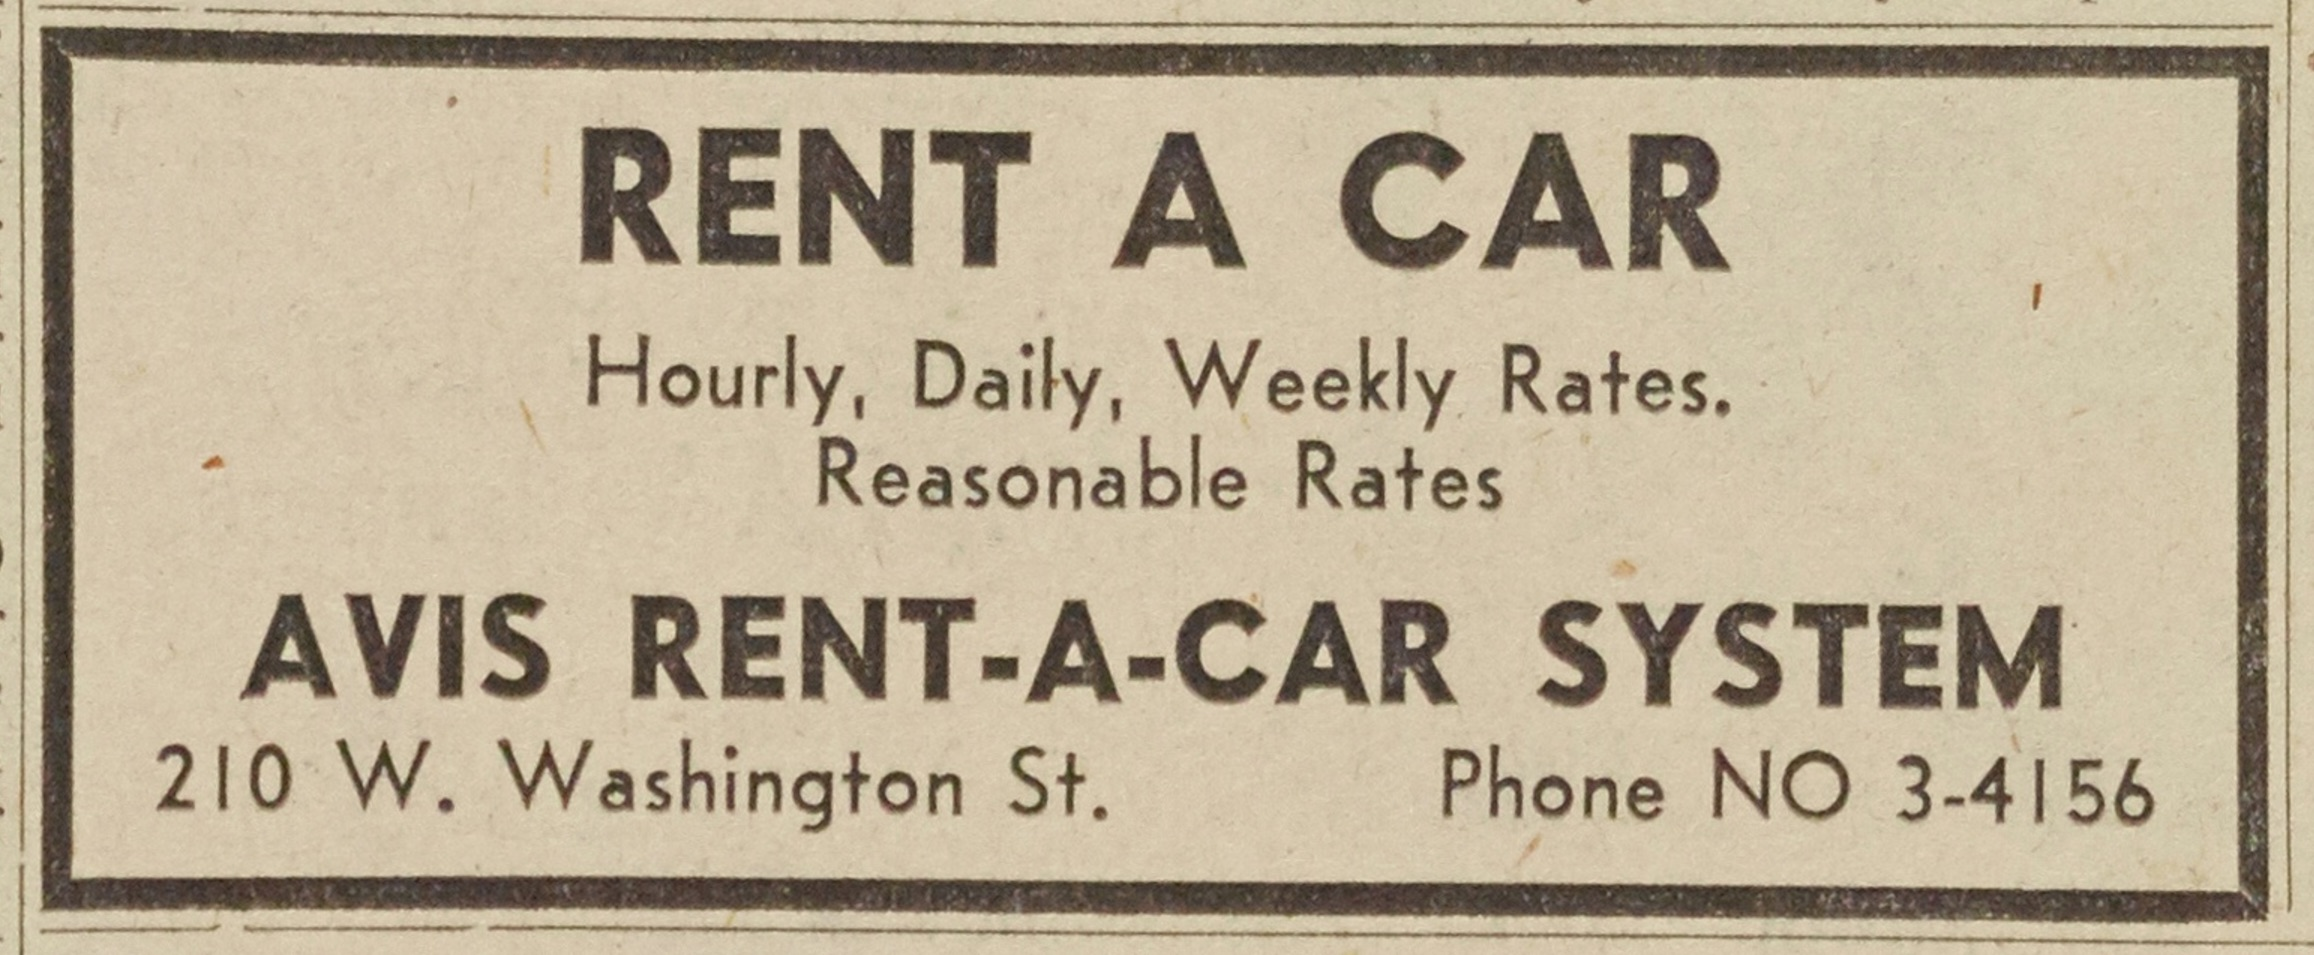 Avis Rent-A-Car System image